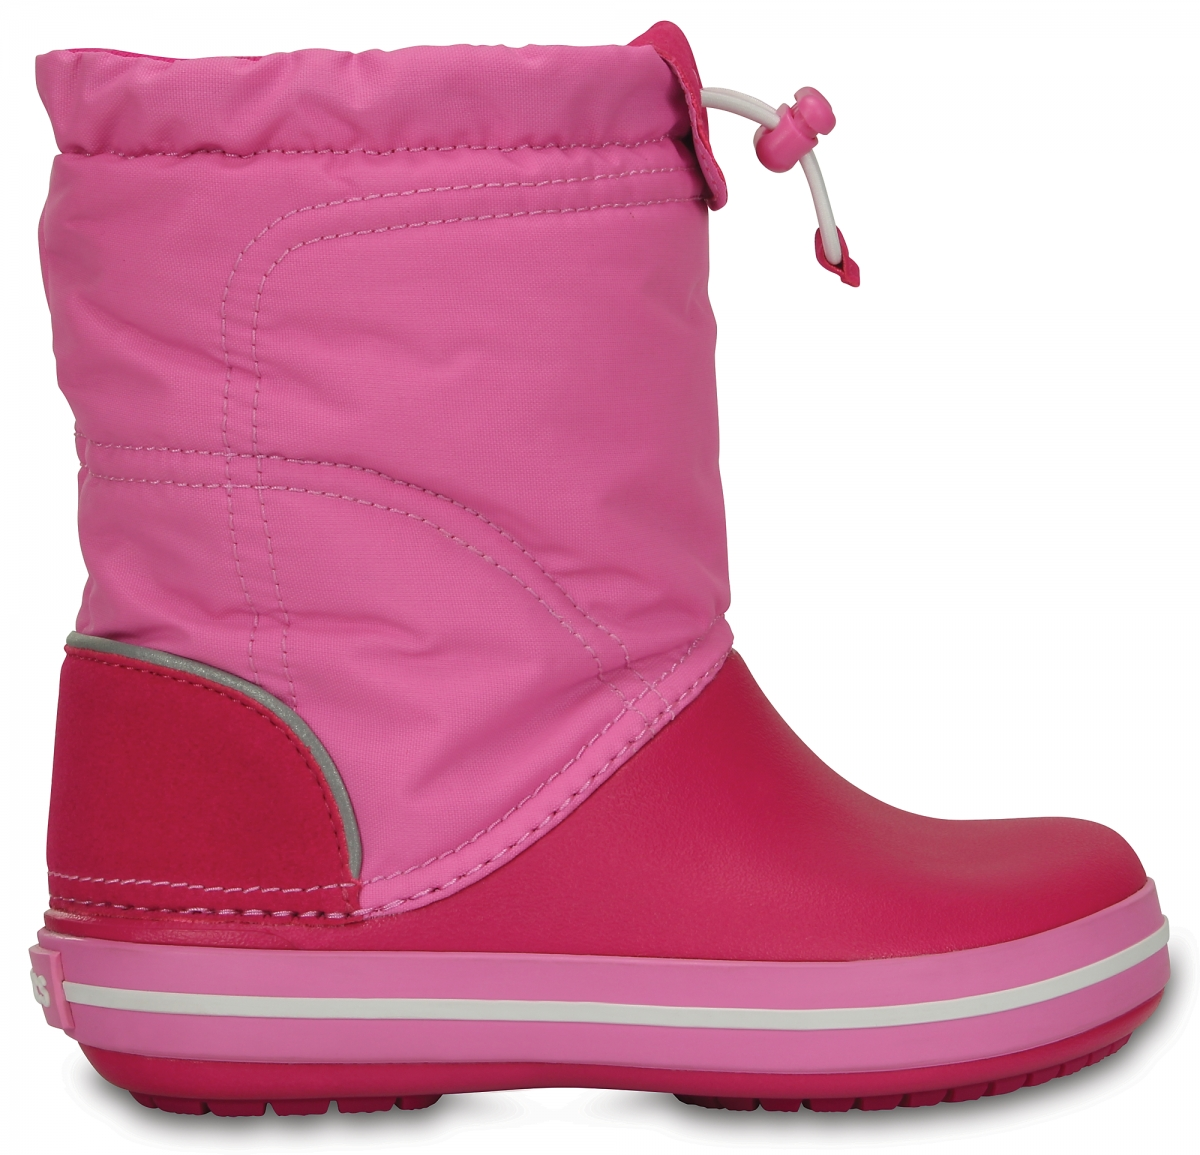 Crocs Crocband LodgePoint Boot Kids - Candy Pink/Party Pink, C12 (29-30)